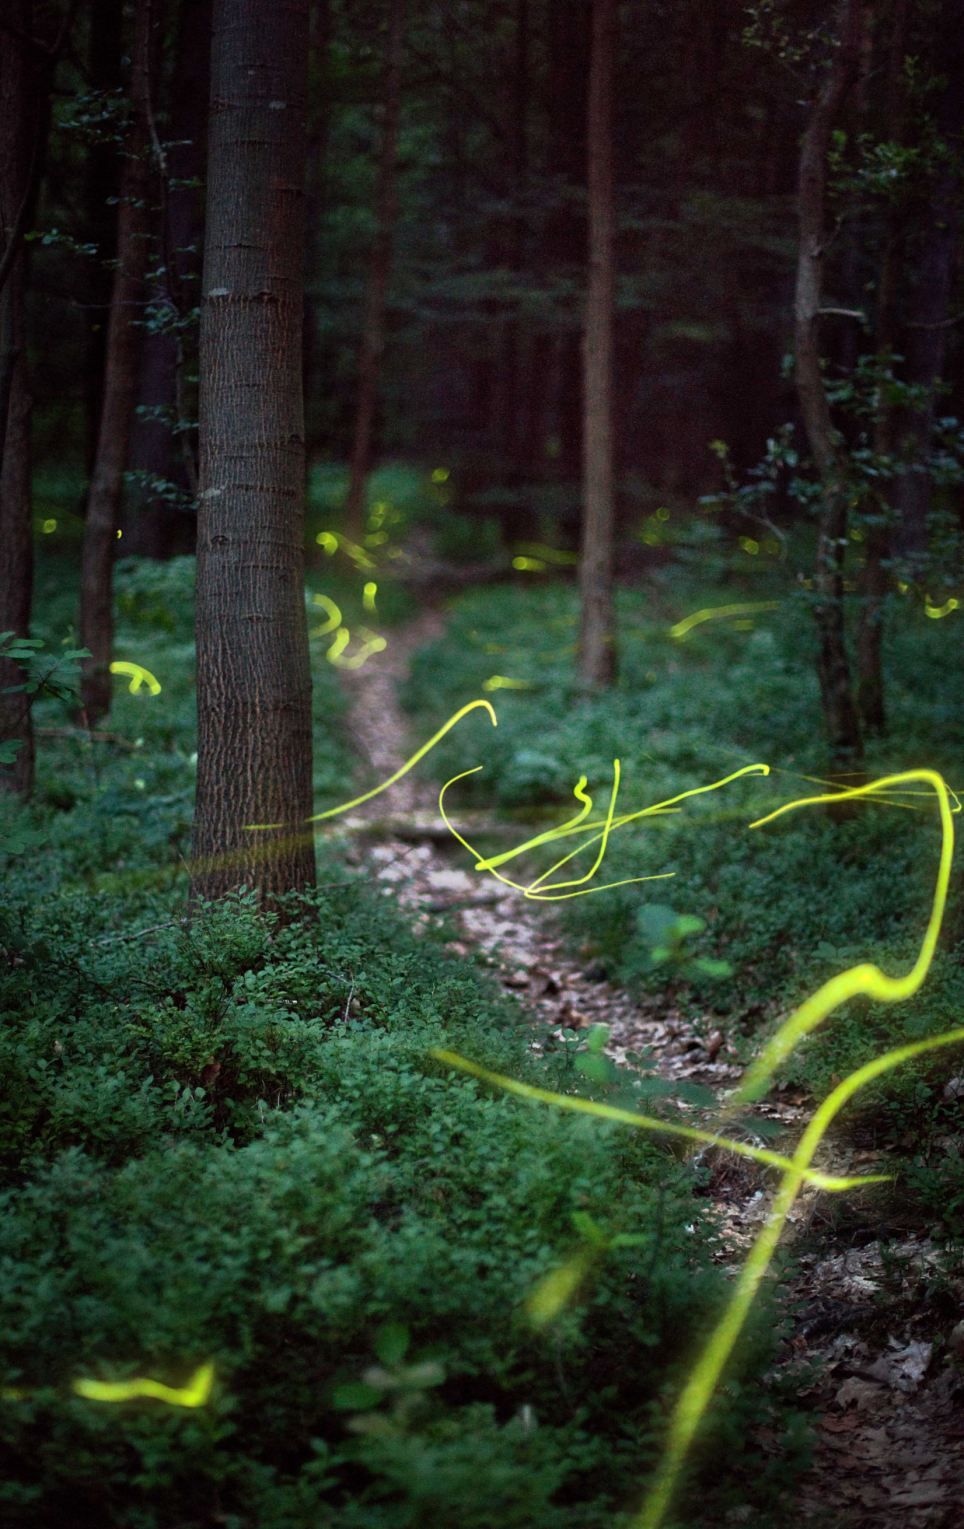 There are many different species of firefly, from a variety that produces no light at all to one that imitates the 'mating' light of other species, to lure hopeful males into becoming supper